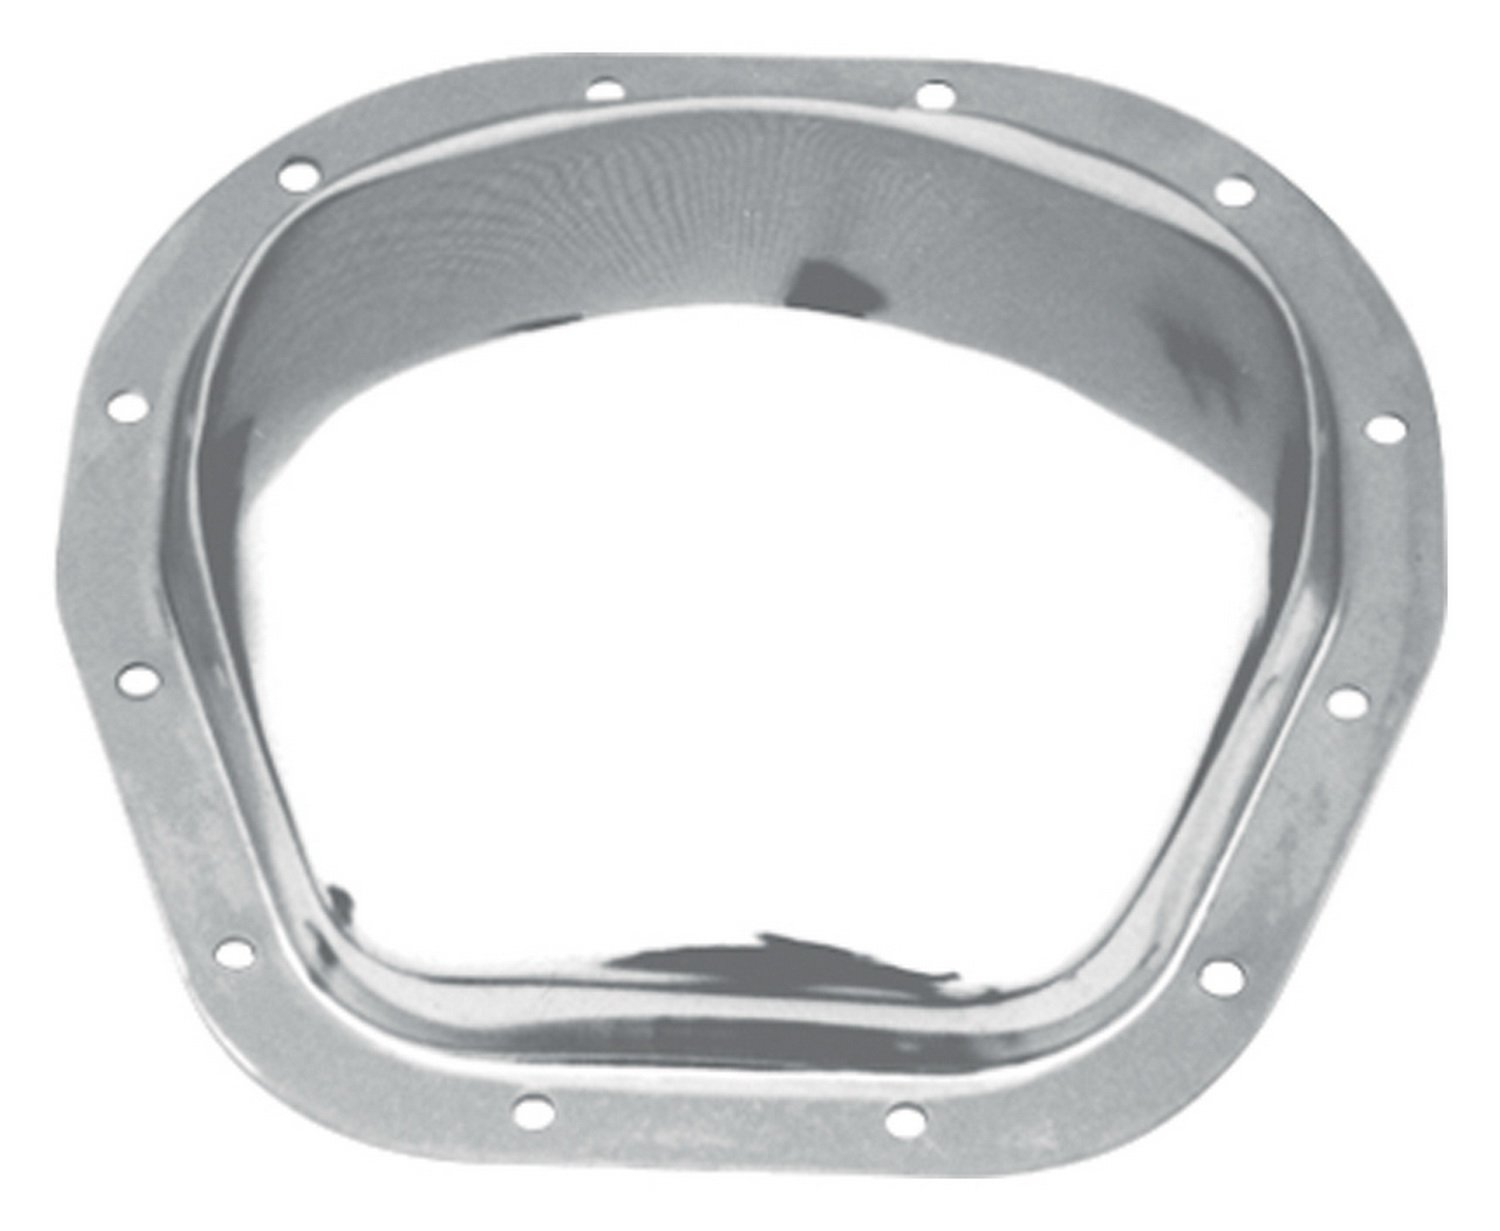 CSI 1314 Steel Differential Cover for Ford 12 bolt rear ends